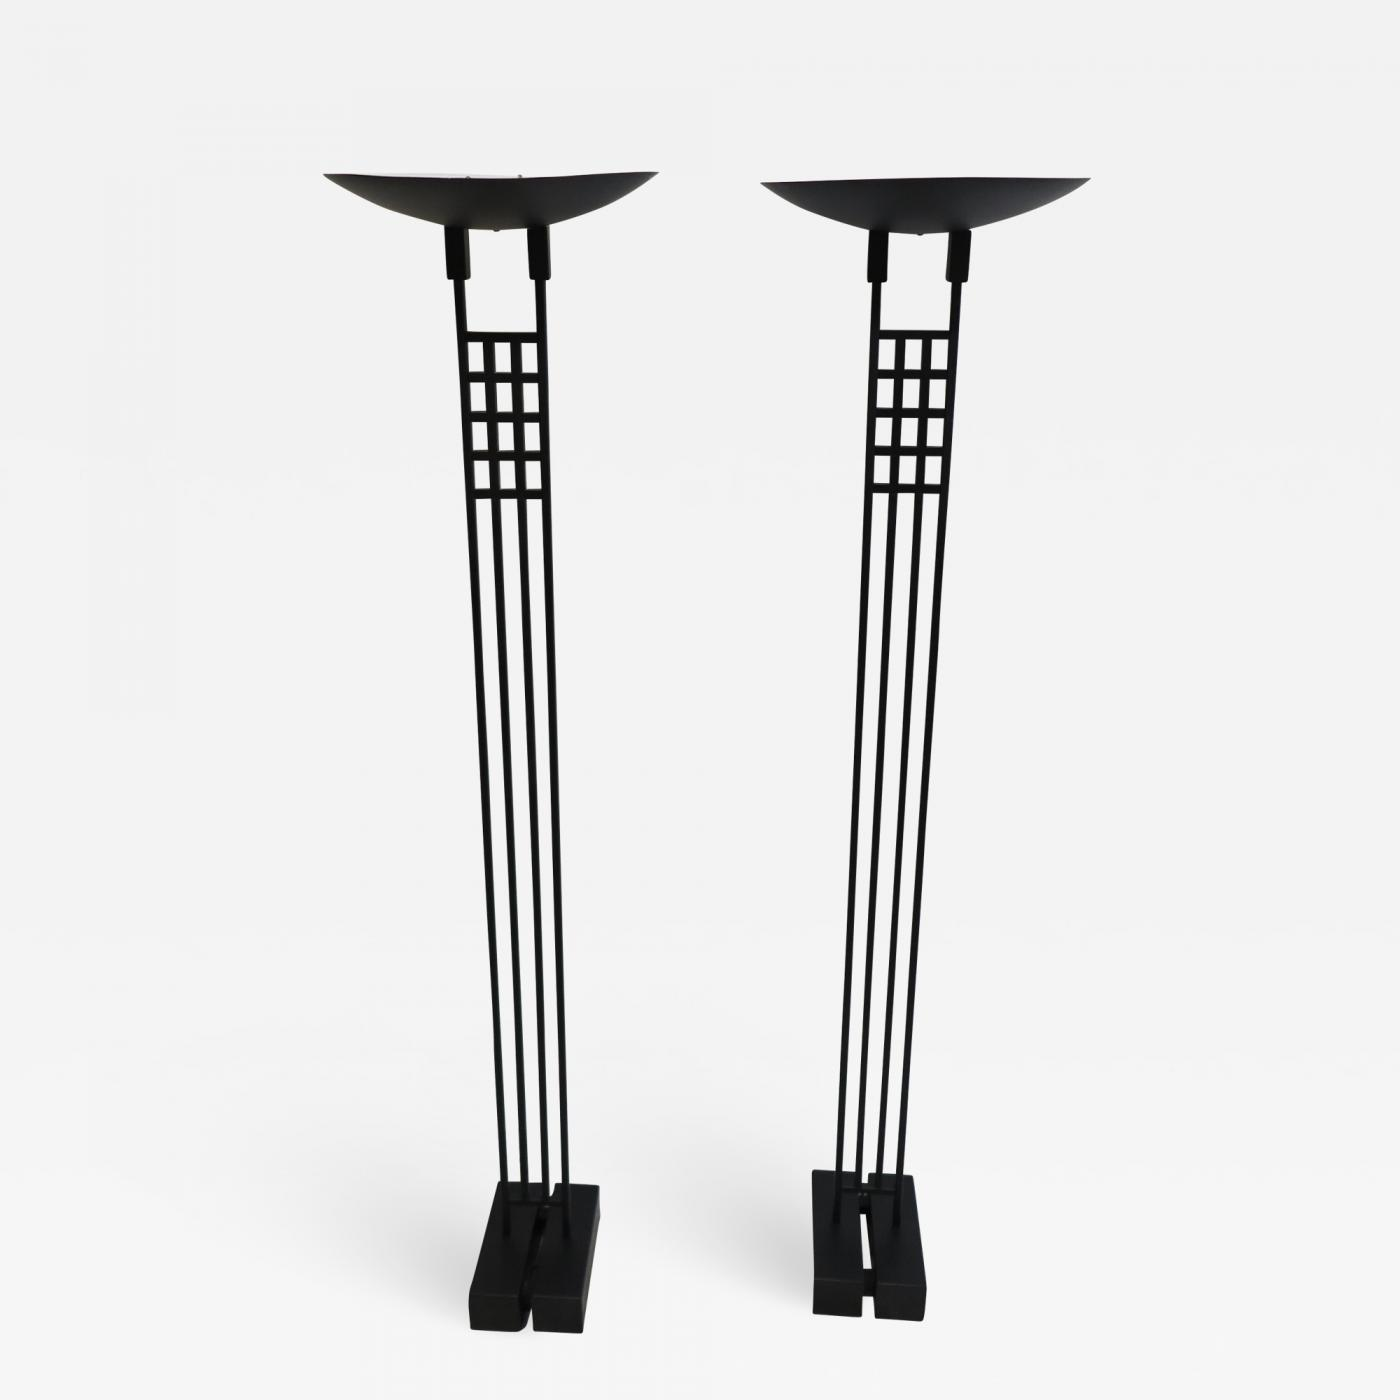 Pedestal Floor Lamps Robert Sonneman Pair Of Sonneman Torchiere Floor Lamps